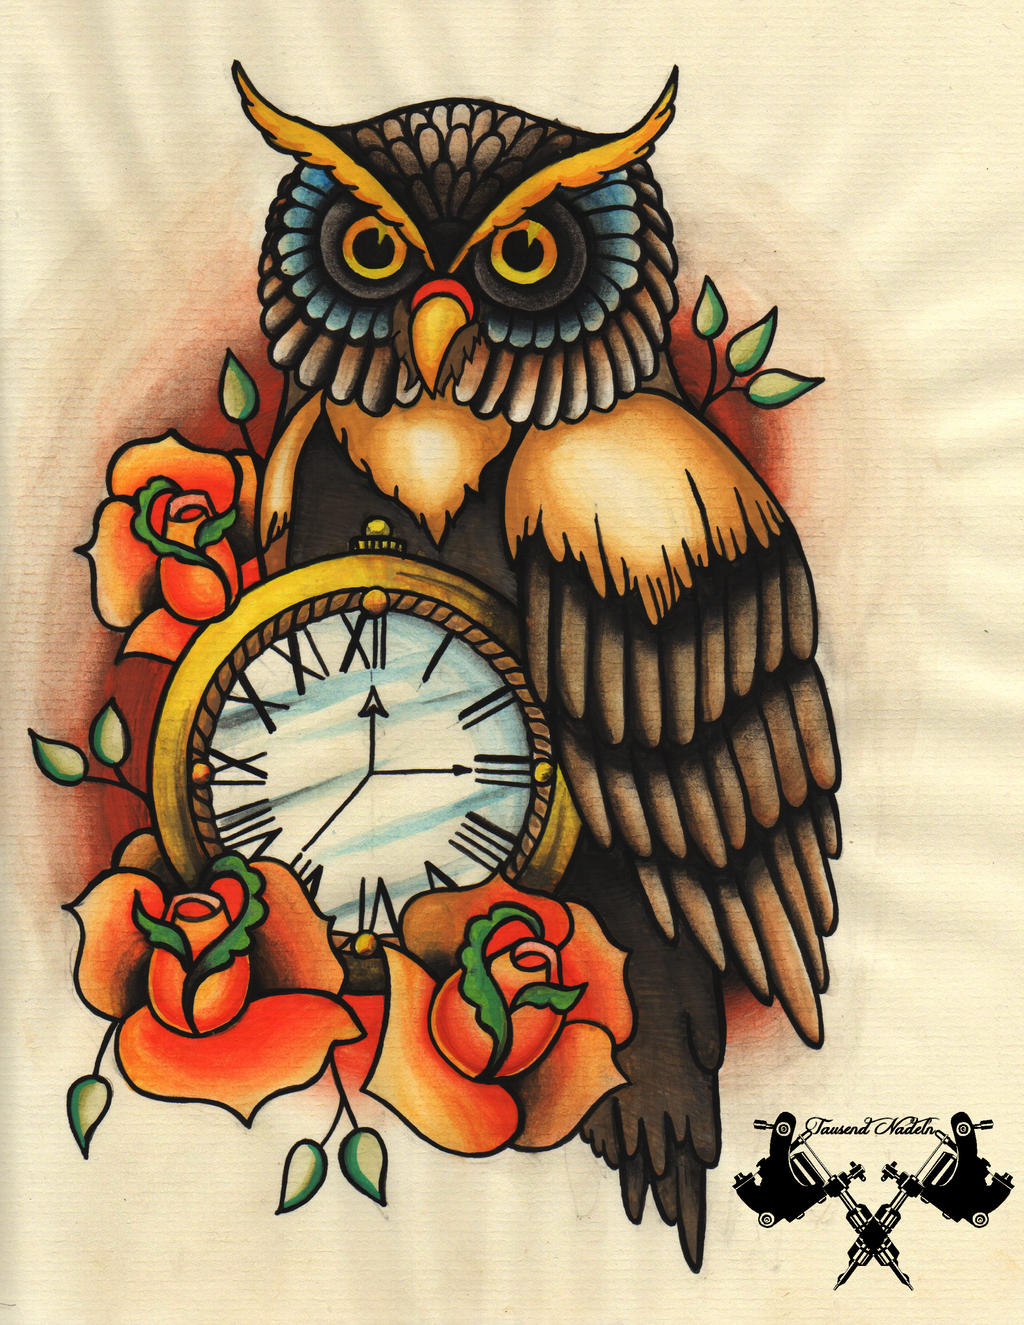 Tattoo Flash Owl And Pocket Watch By Tausend Nadeln On